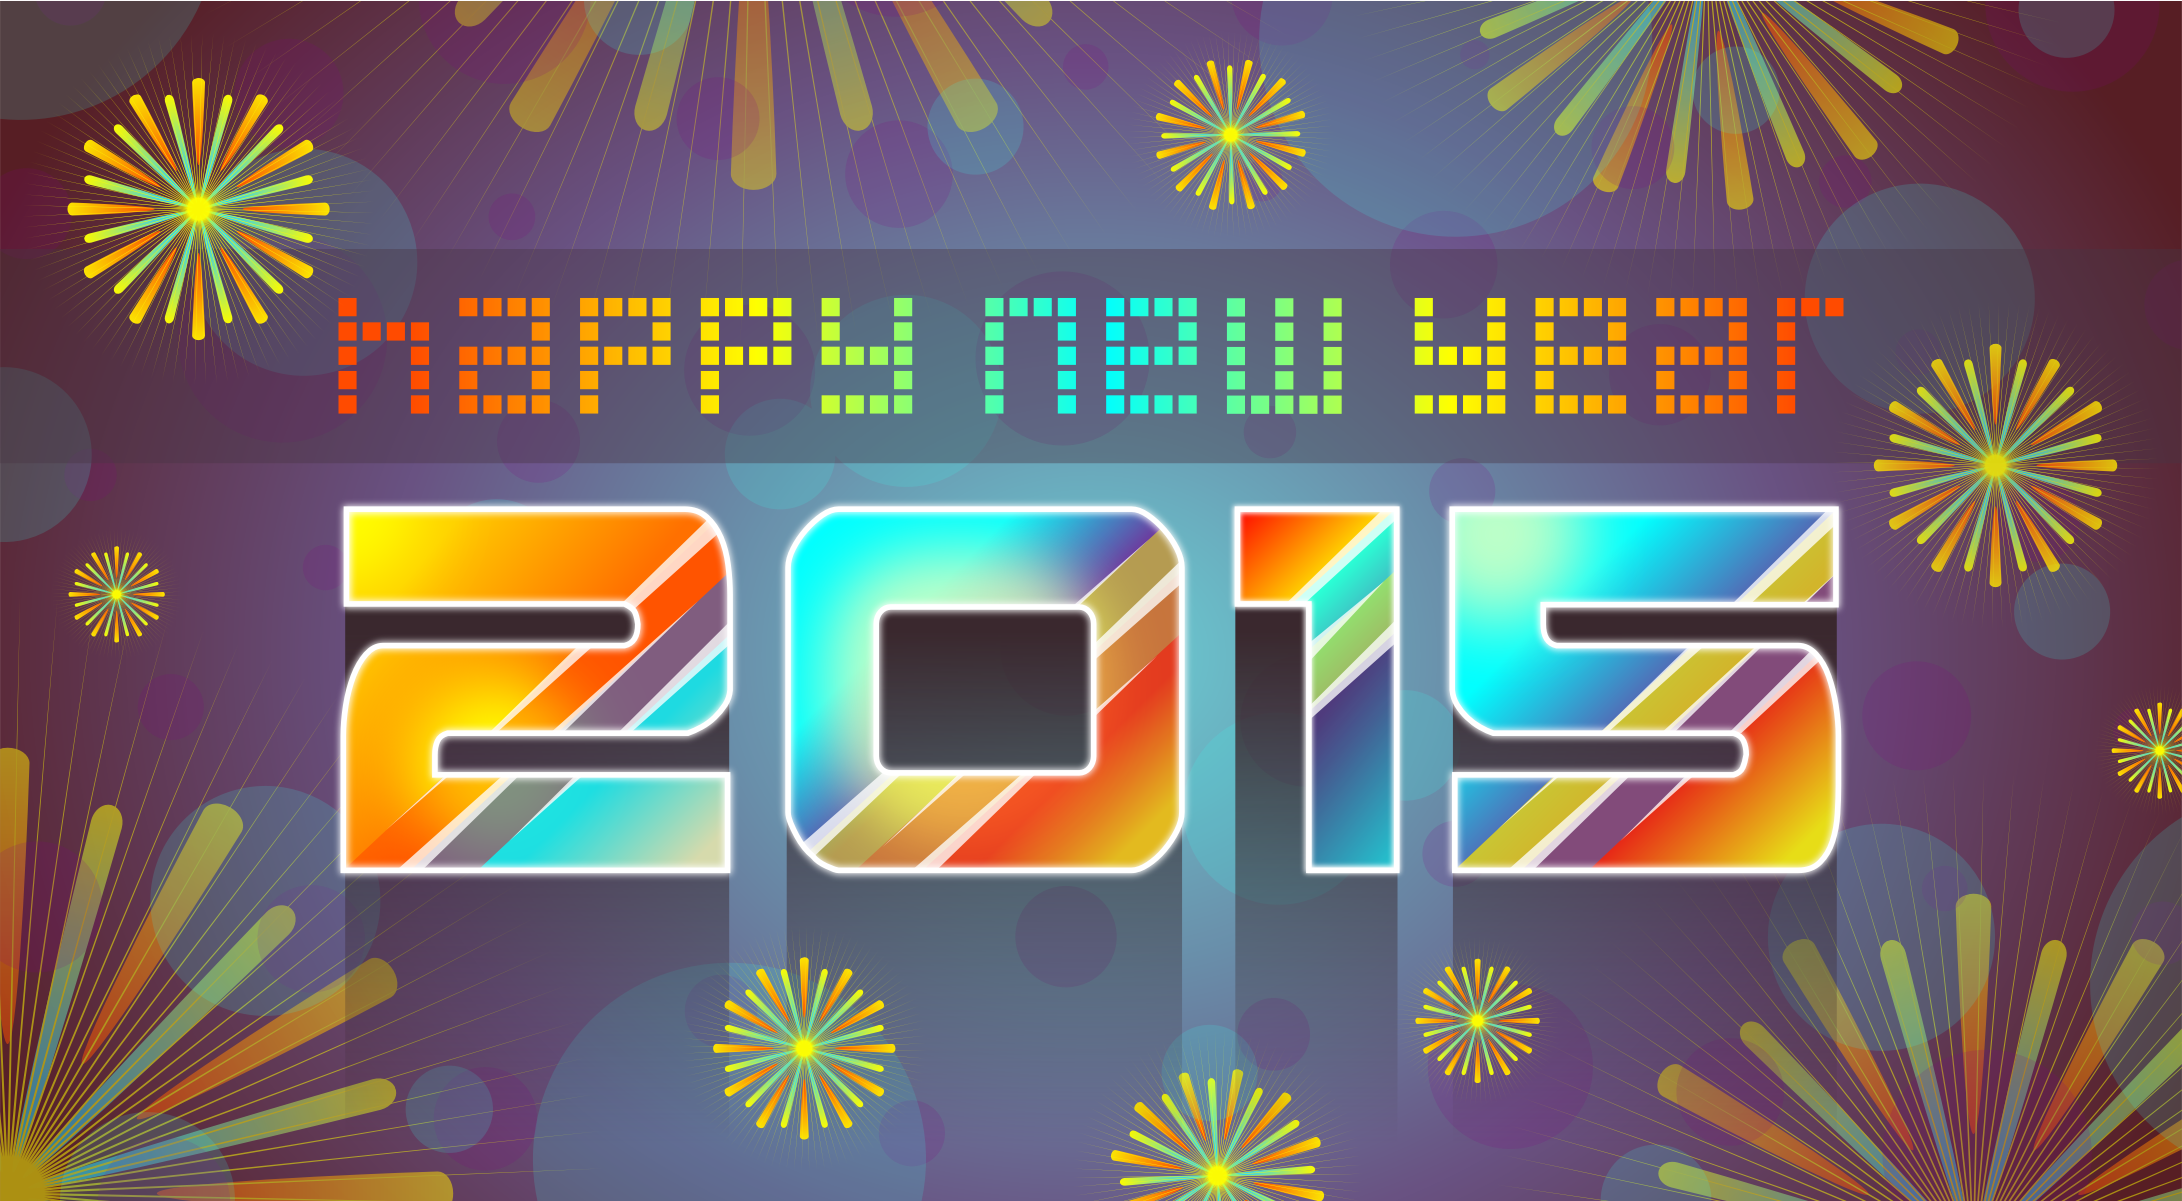 Real estate new year clipart.